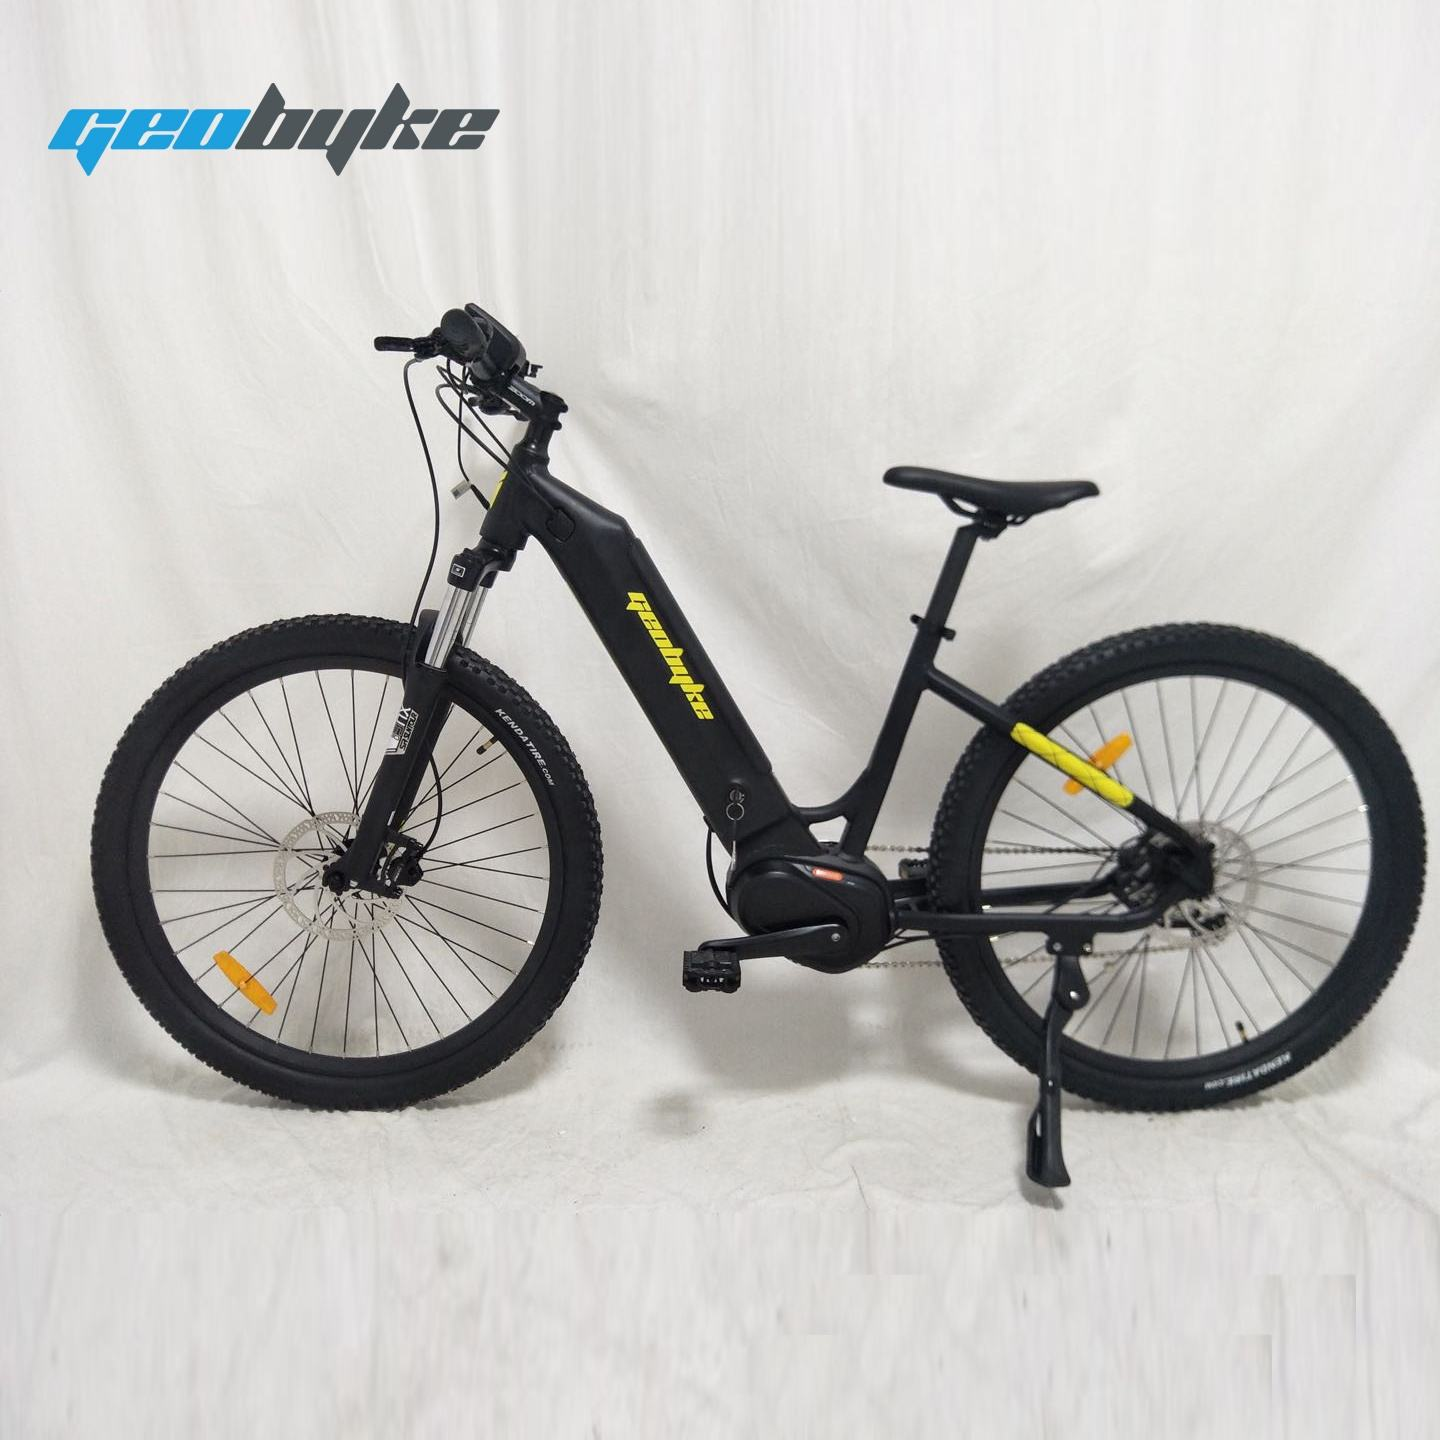 Green Power Urban City Electric Bike Lady Step Through Mid Driving 48V 350W